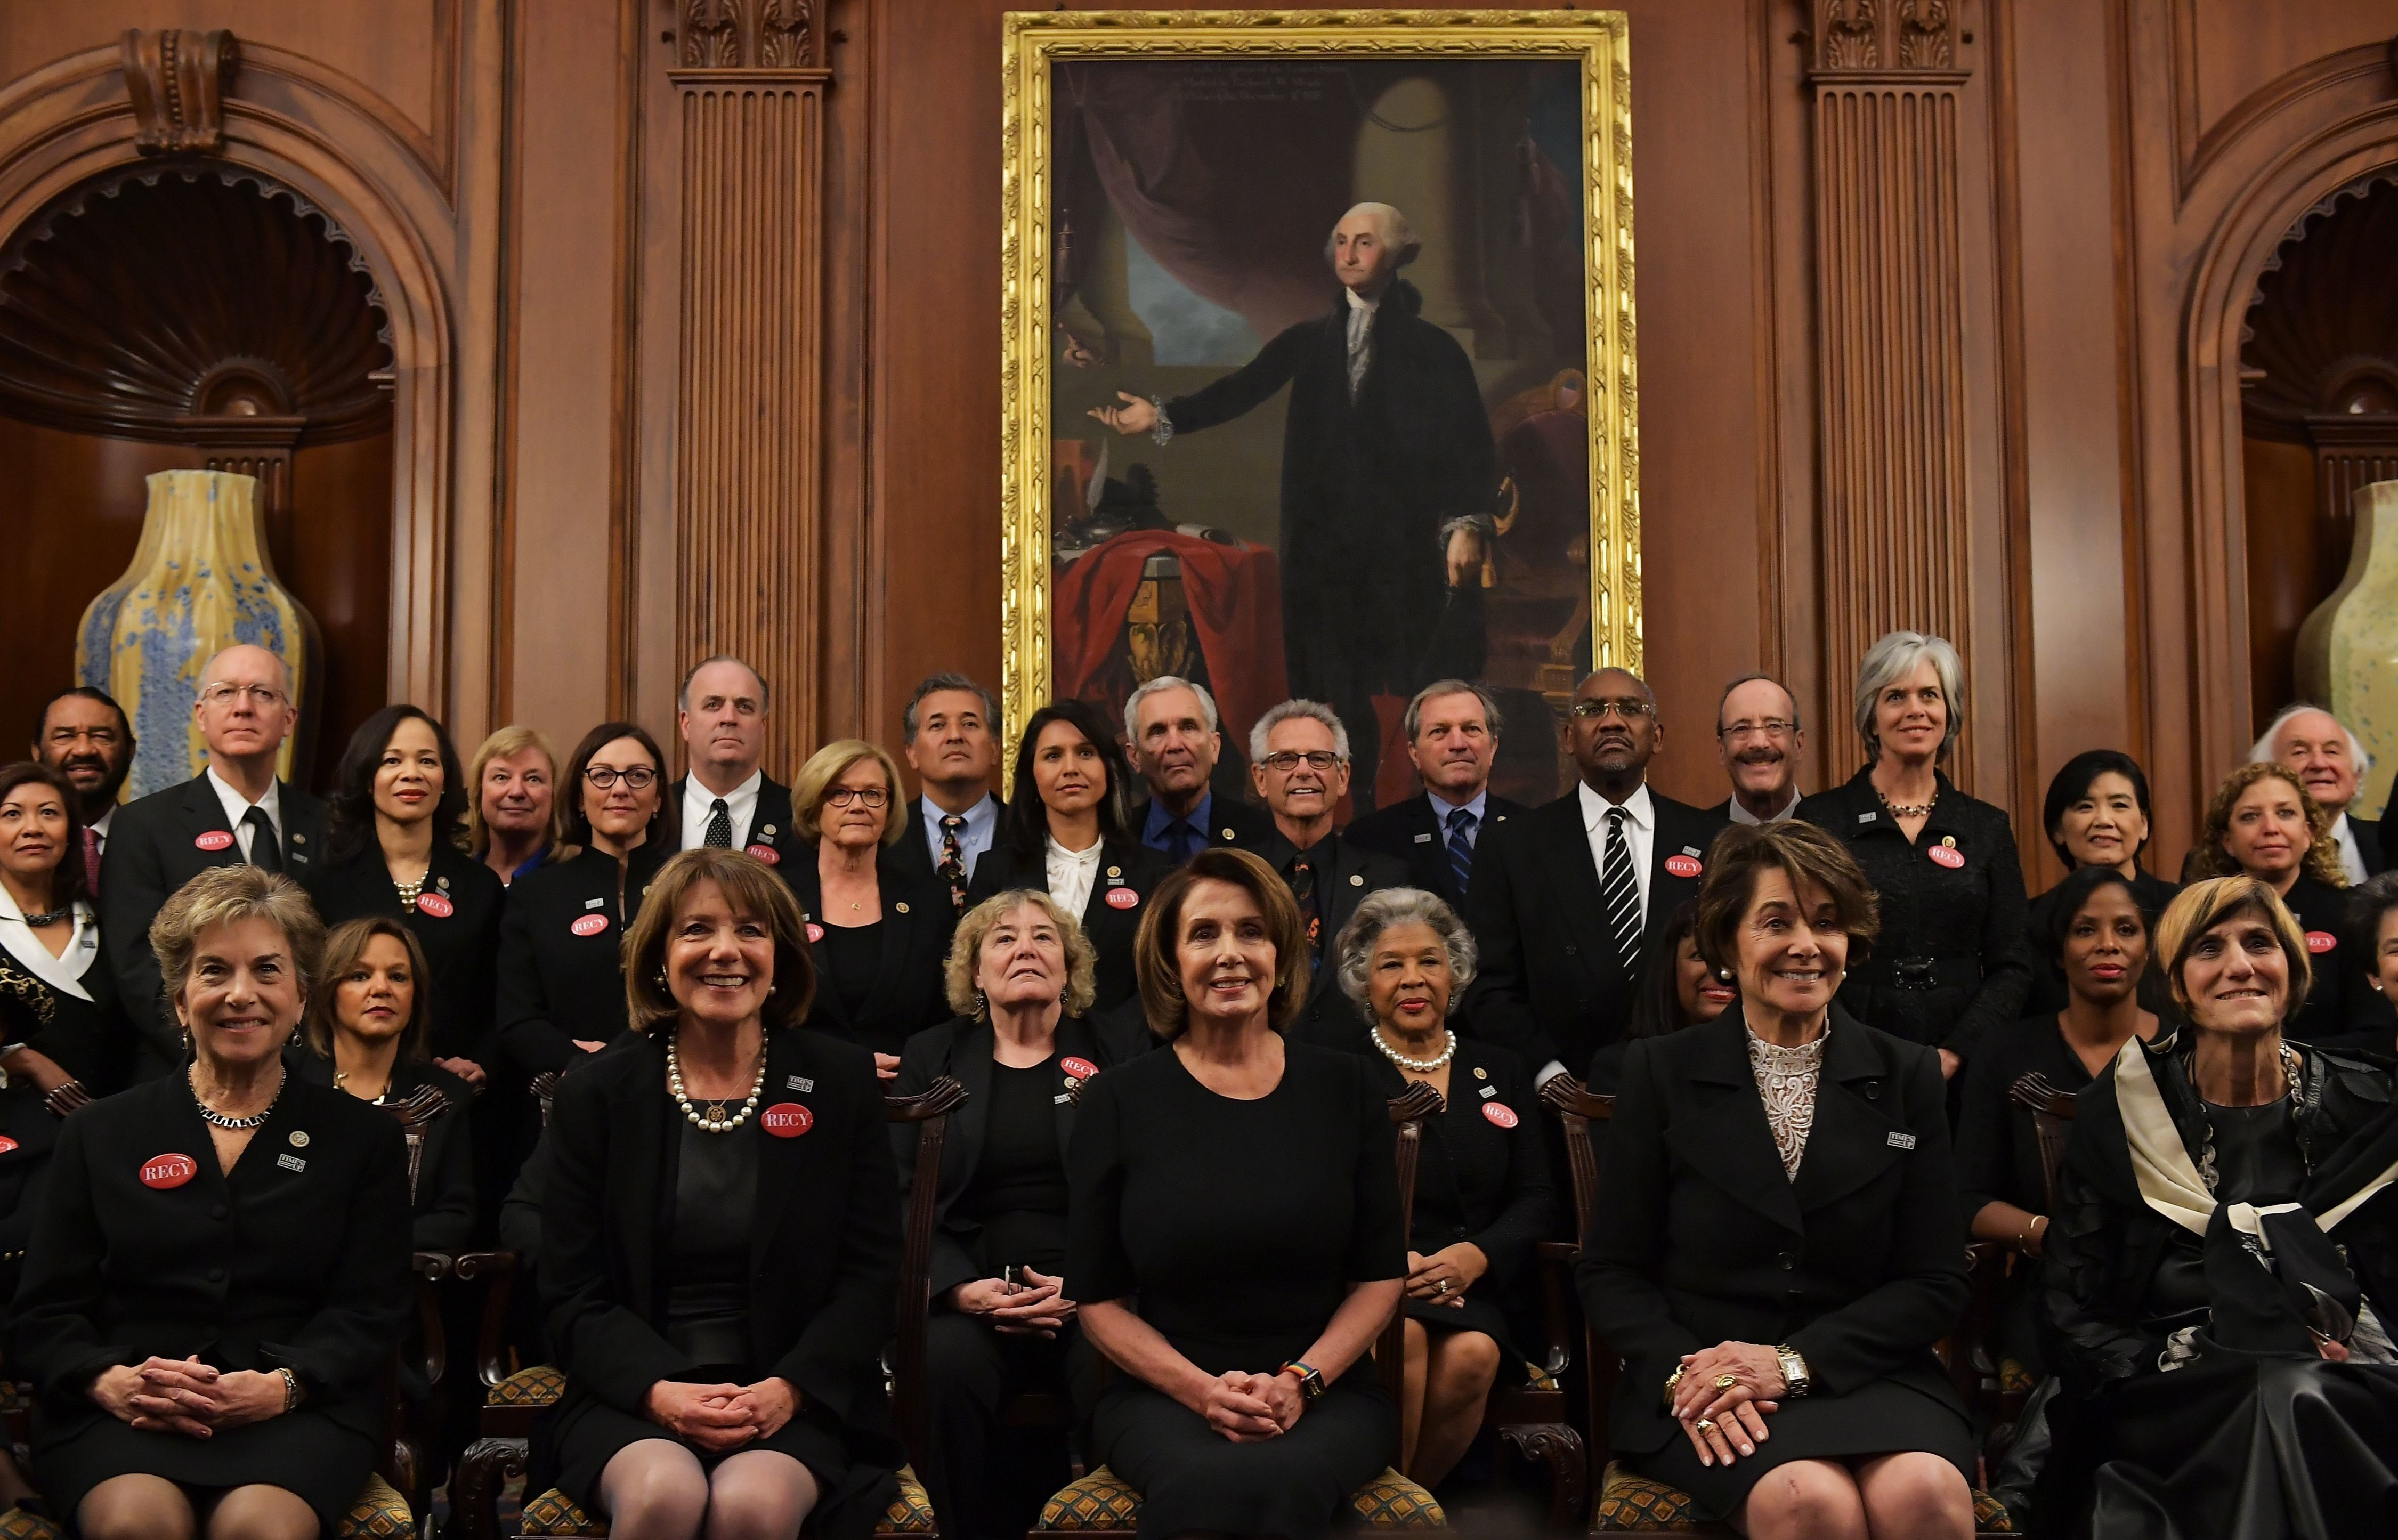 House Minority Leader Nancy Pelosi (C), D-CA, poses with members of Congress wearing black in support of the 'metoo' movement in the Rayburn Room of the US Capitol in Washington, DC on January 30, 2018. / AFP PHOTO / MANDEL NGAN        (Photo credit should read MANDEL NGAN/AFP/Getty Images)